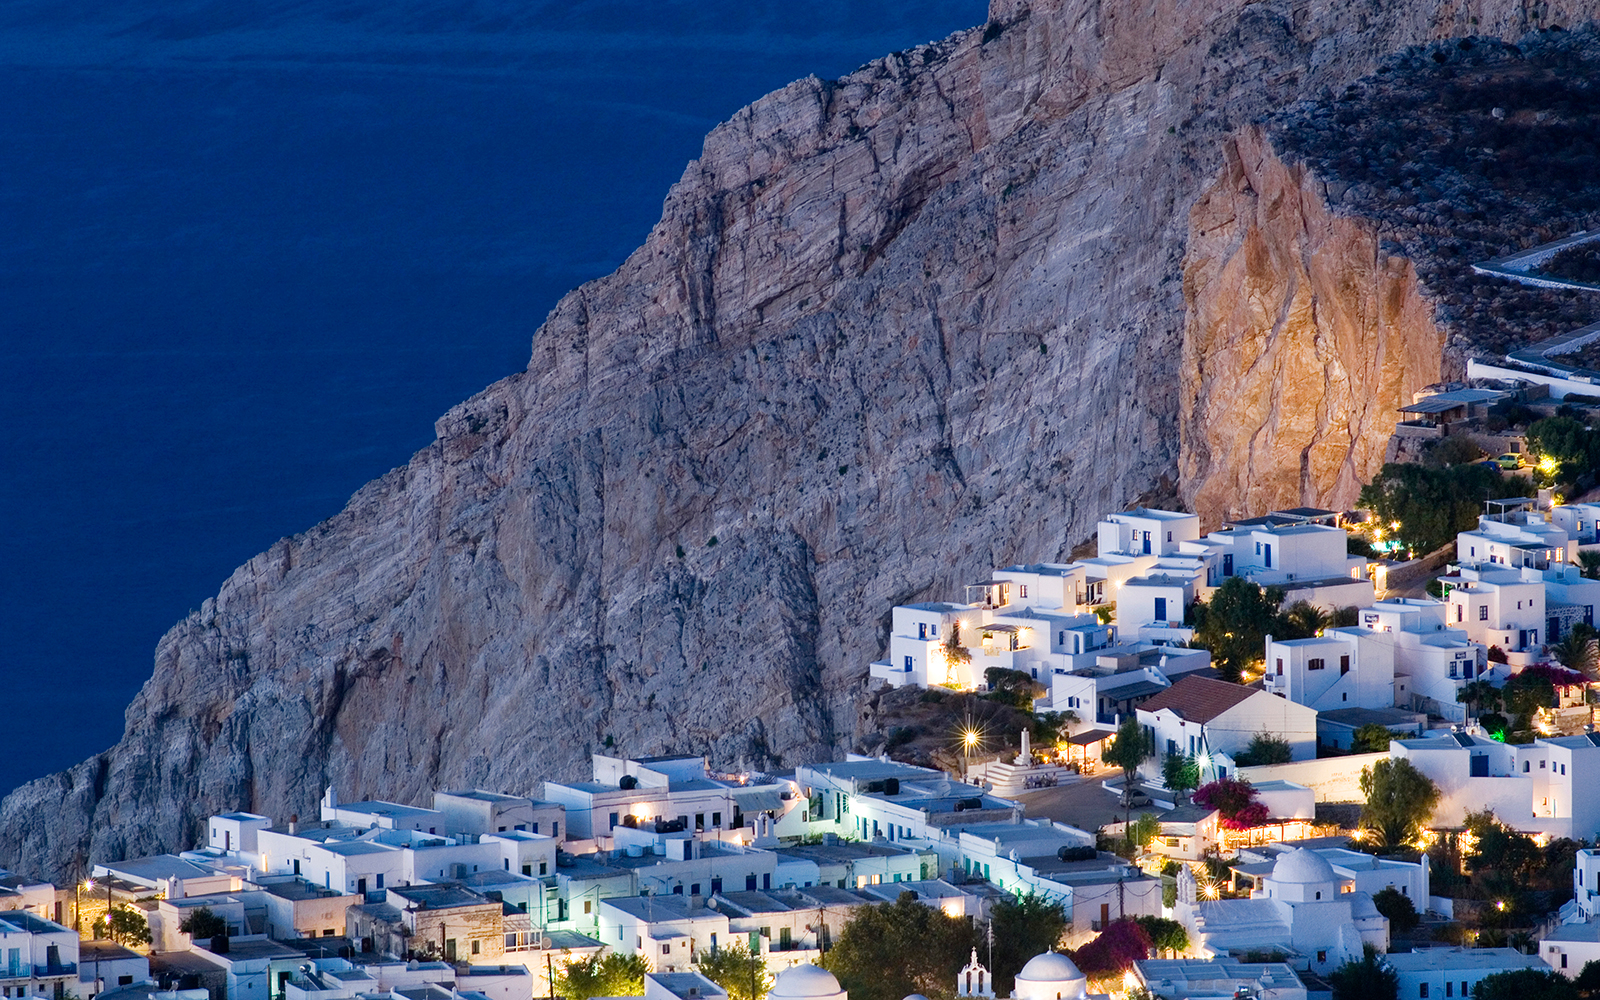 homes on the cliff in Folégandros, Greece